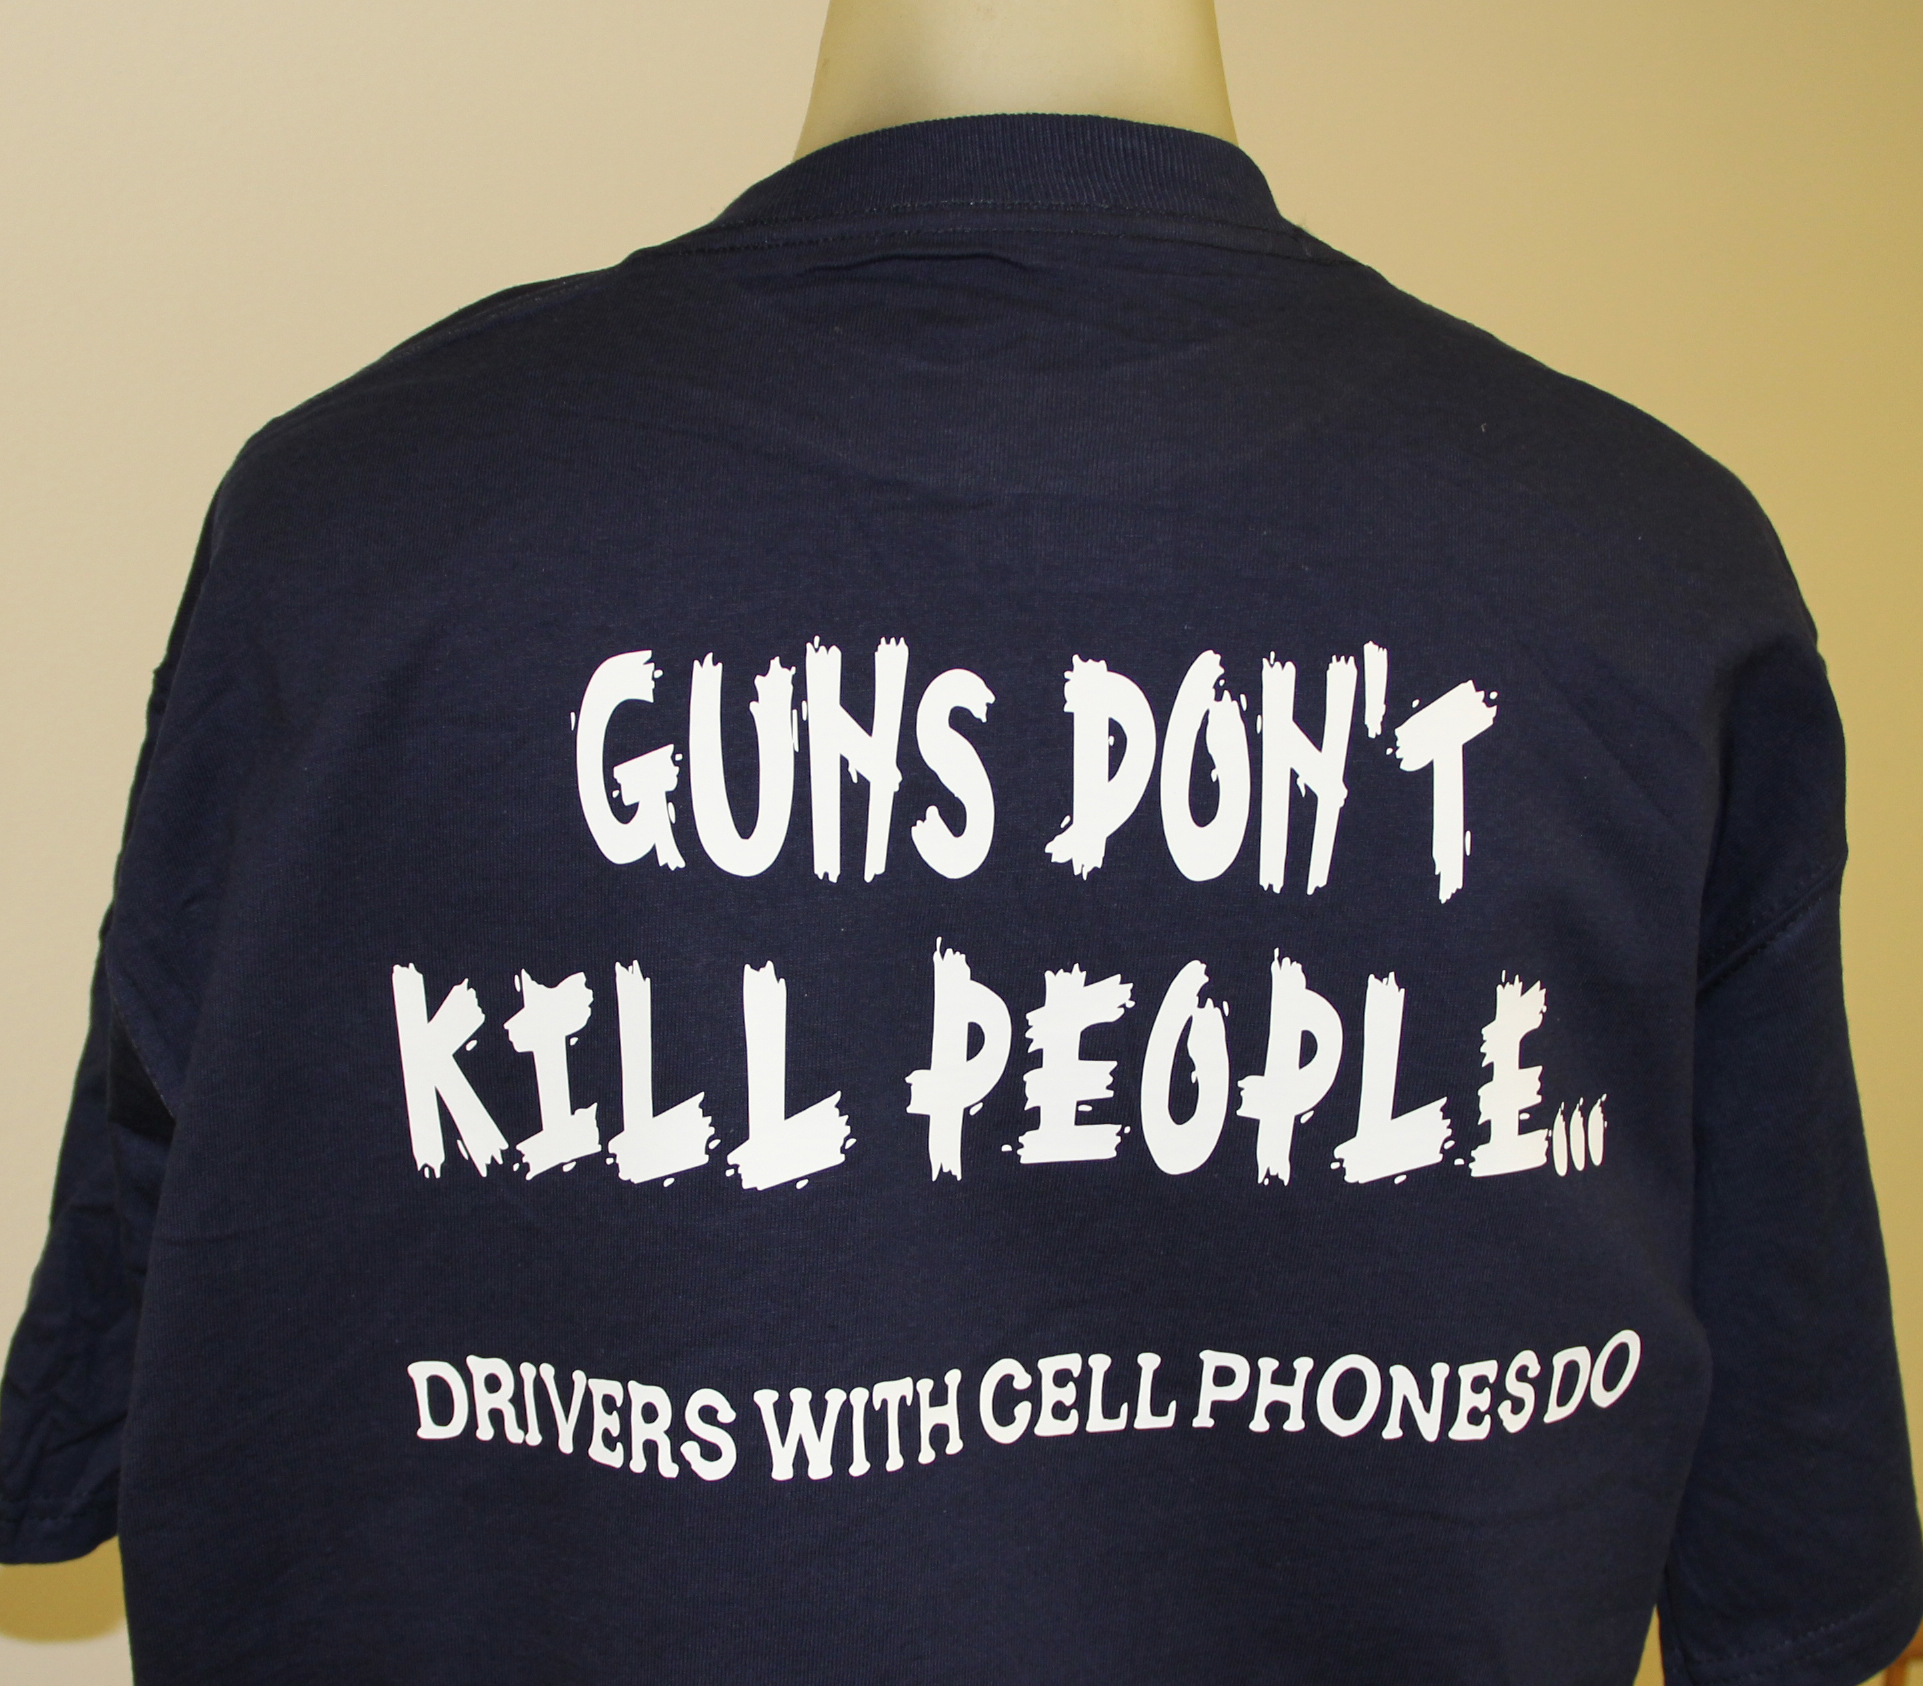 guns-dont-kill-people-drivers-with-cell-phones-do-shirt.jpg